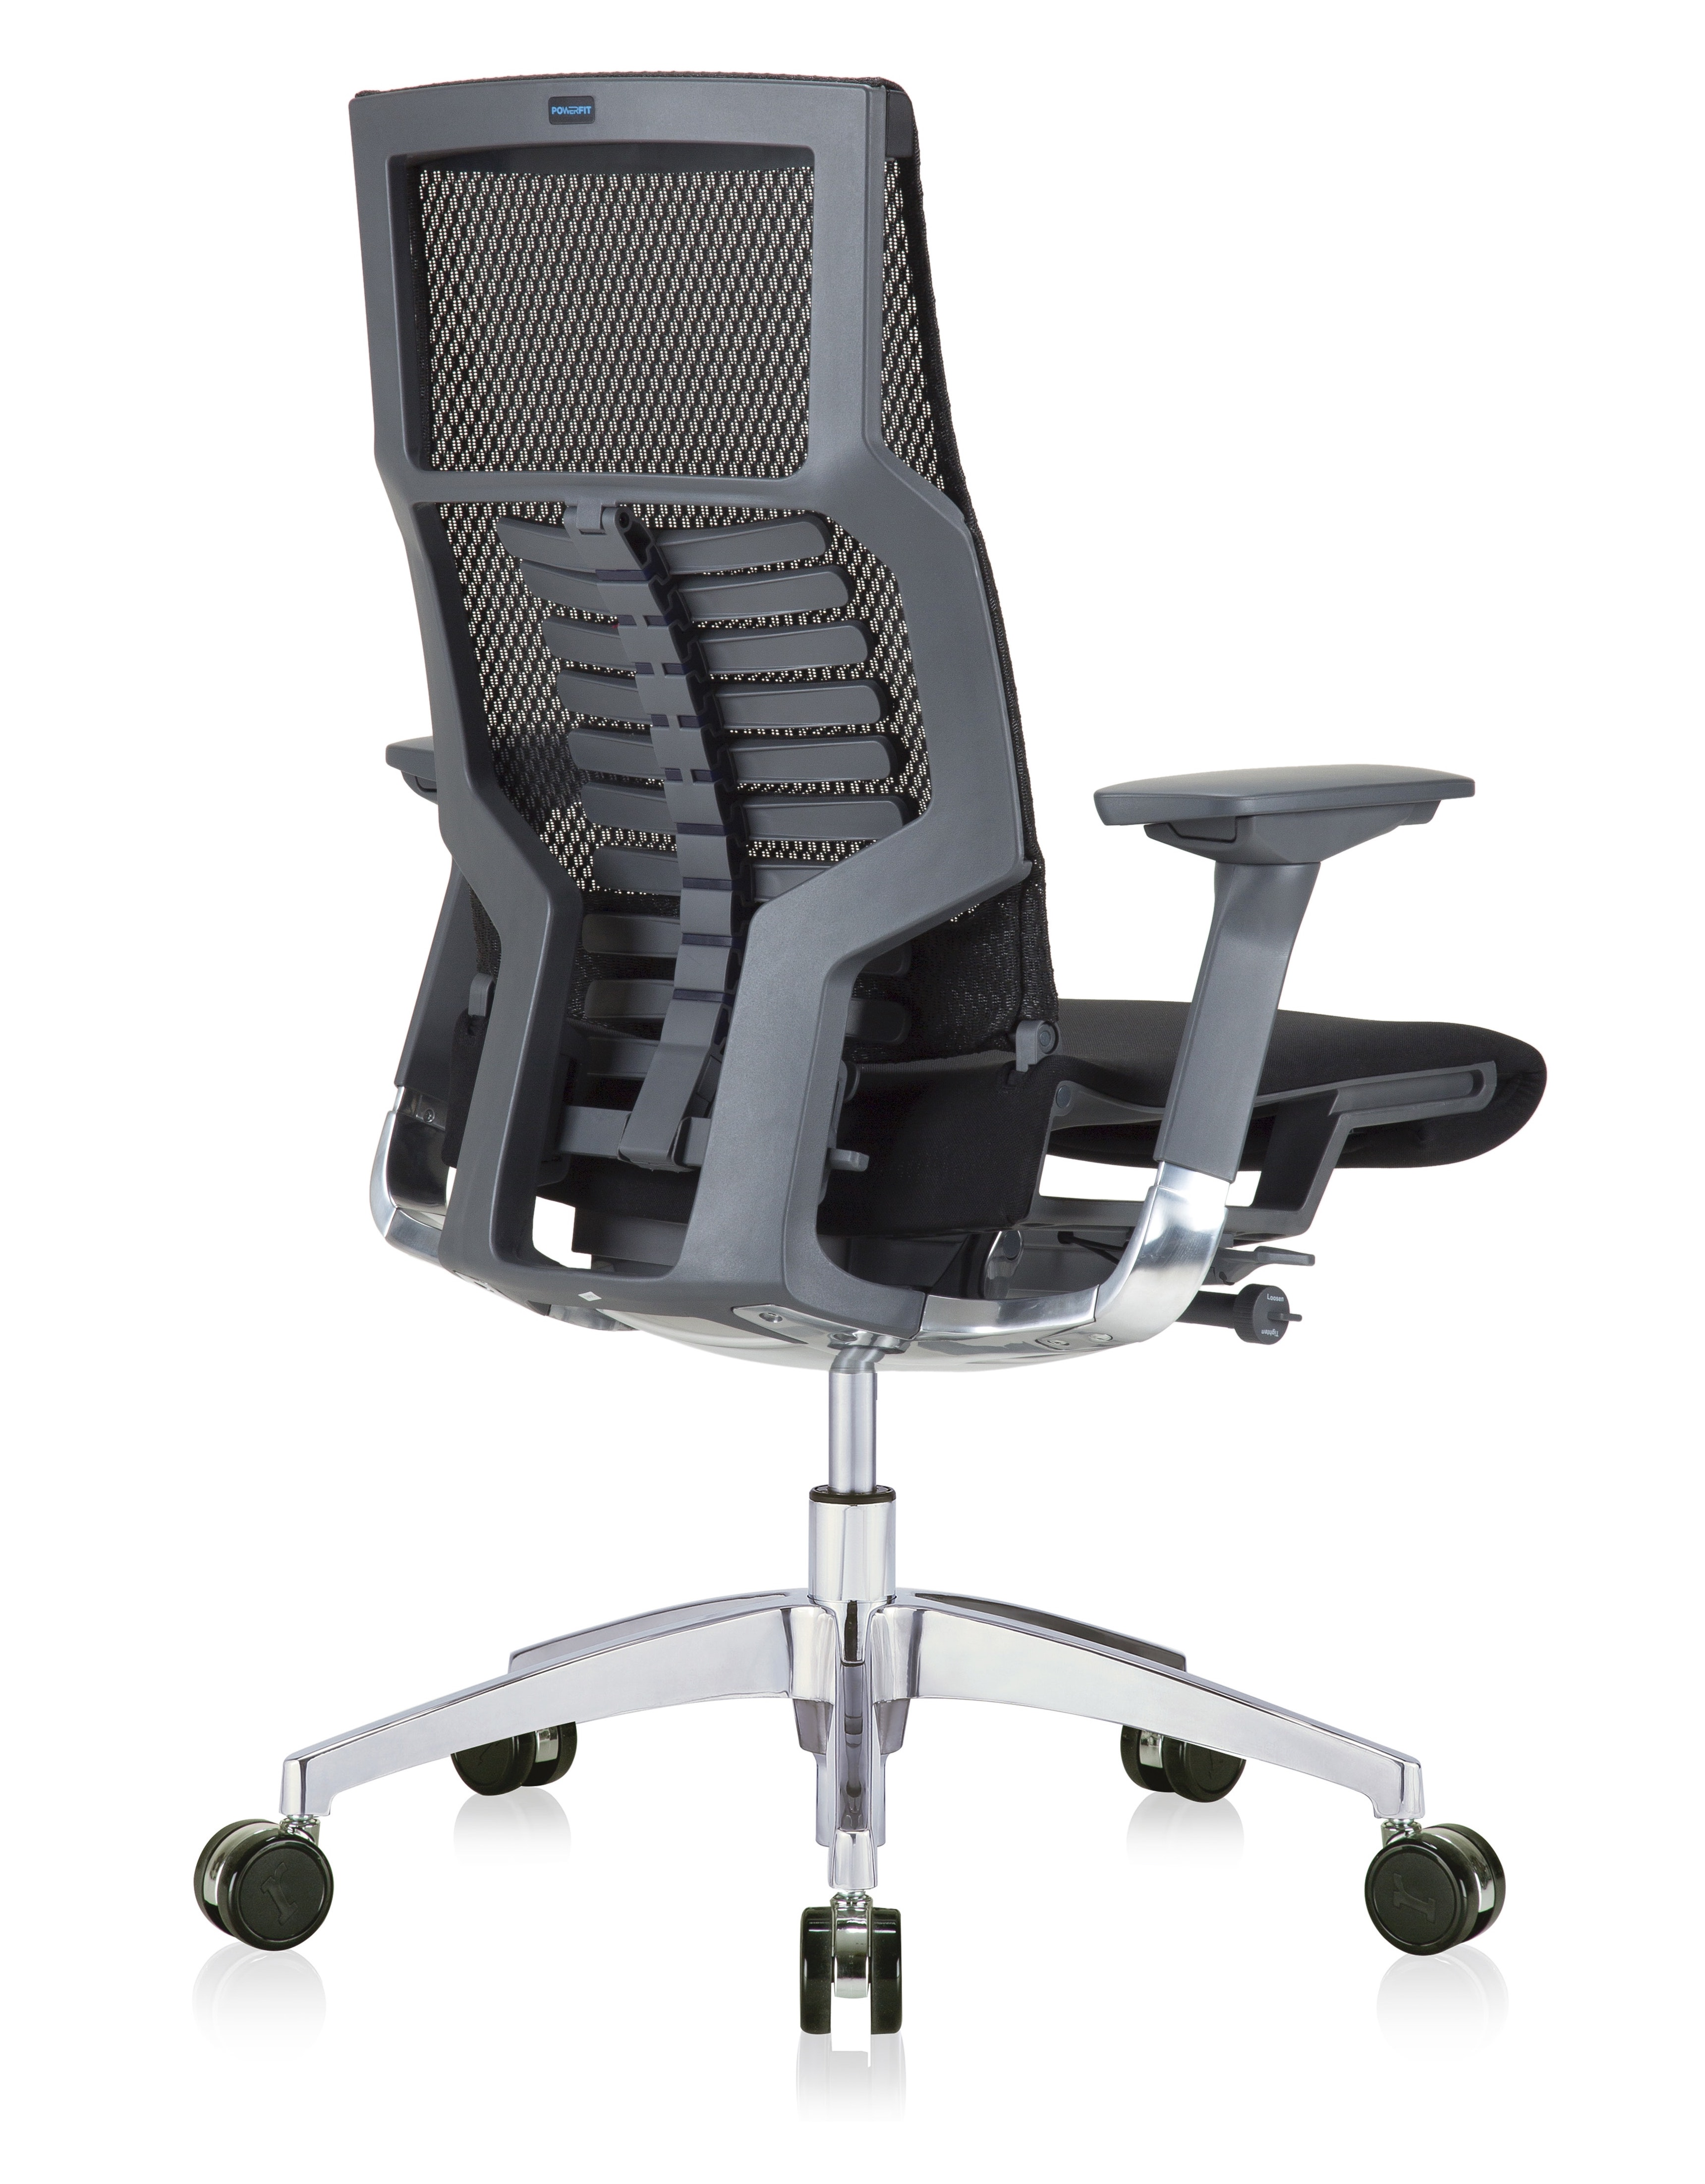 eurotech powerfit chair - side view